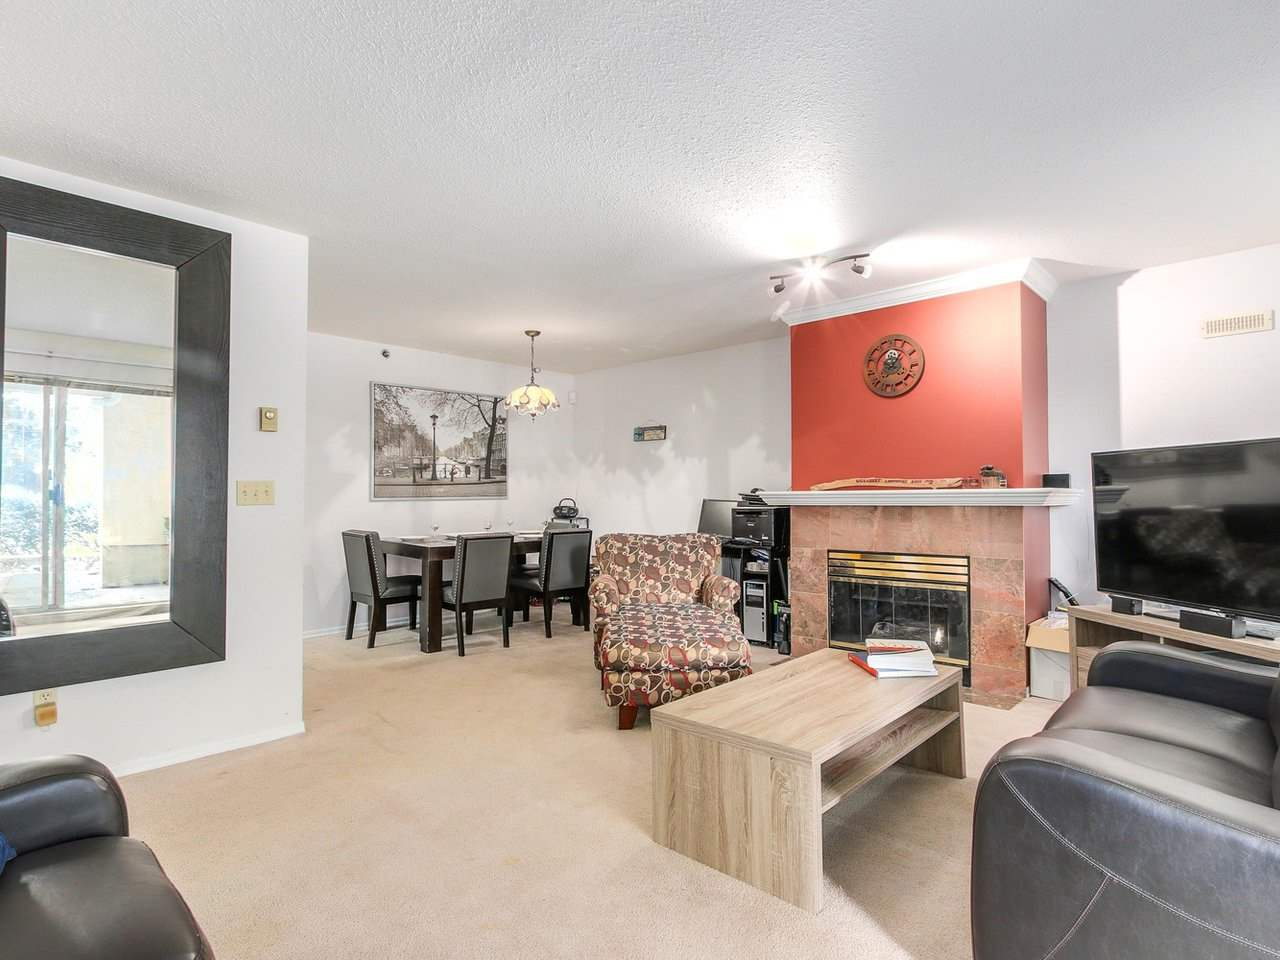 Photo 4: 105 1175 HEFFLEY Crescent in Coquitlam: North Coquitlam Condo for sale : MLS(r) # R2185533